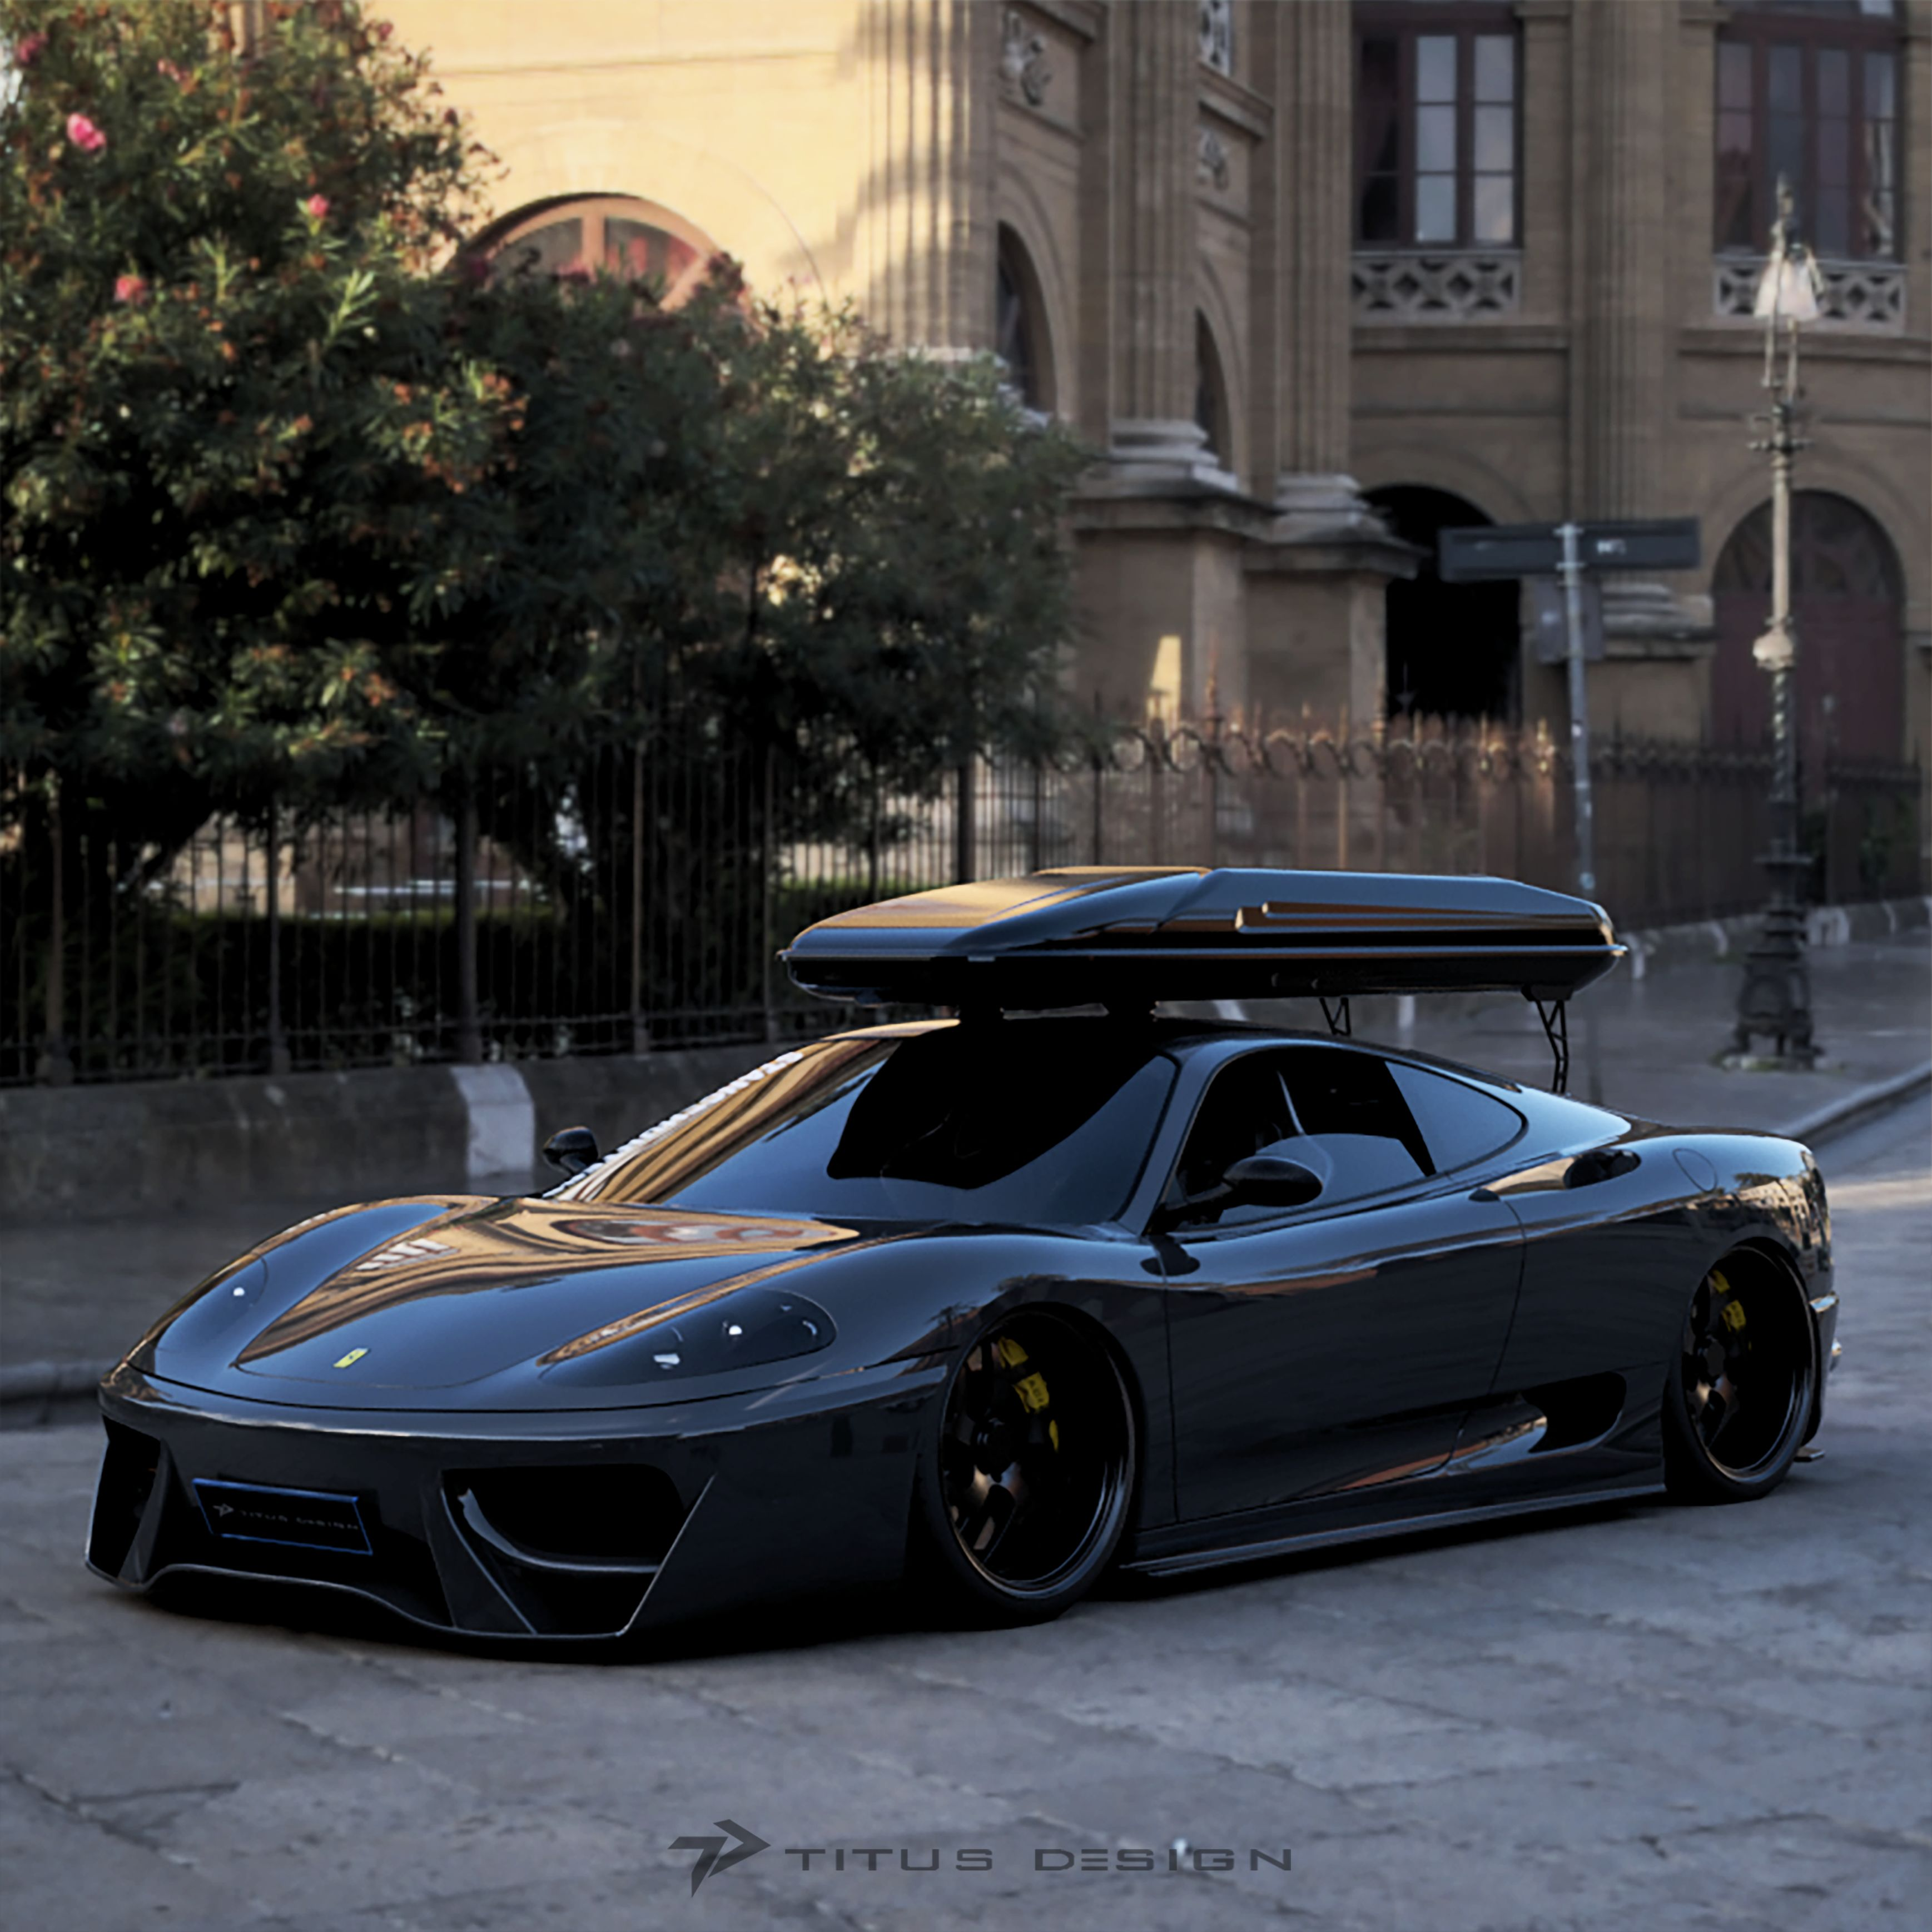 Ferrari 360 Modena Modified Autodesk Online Gallery